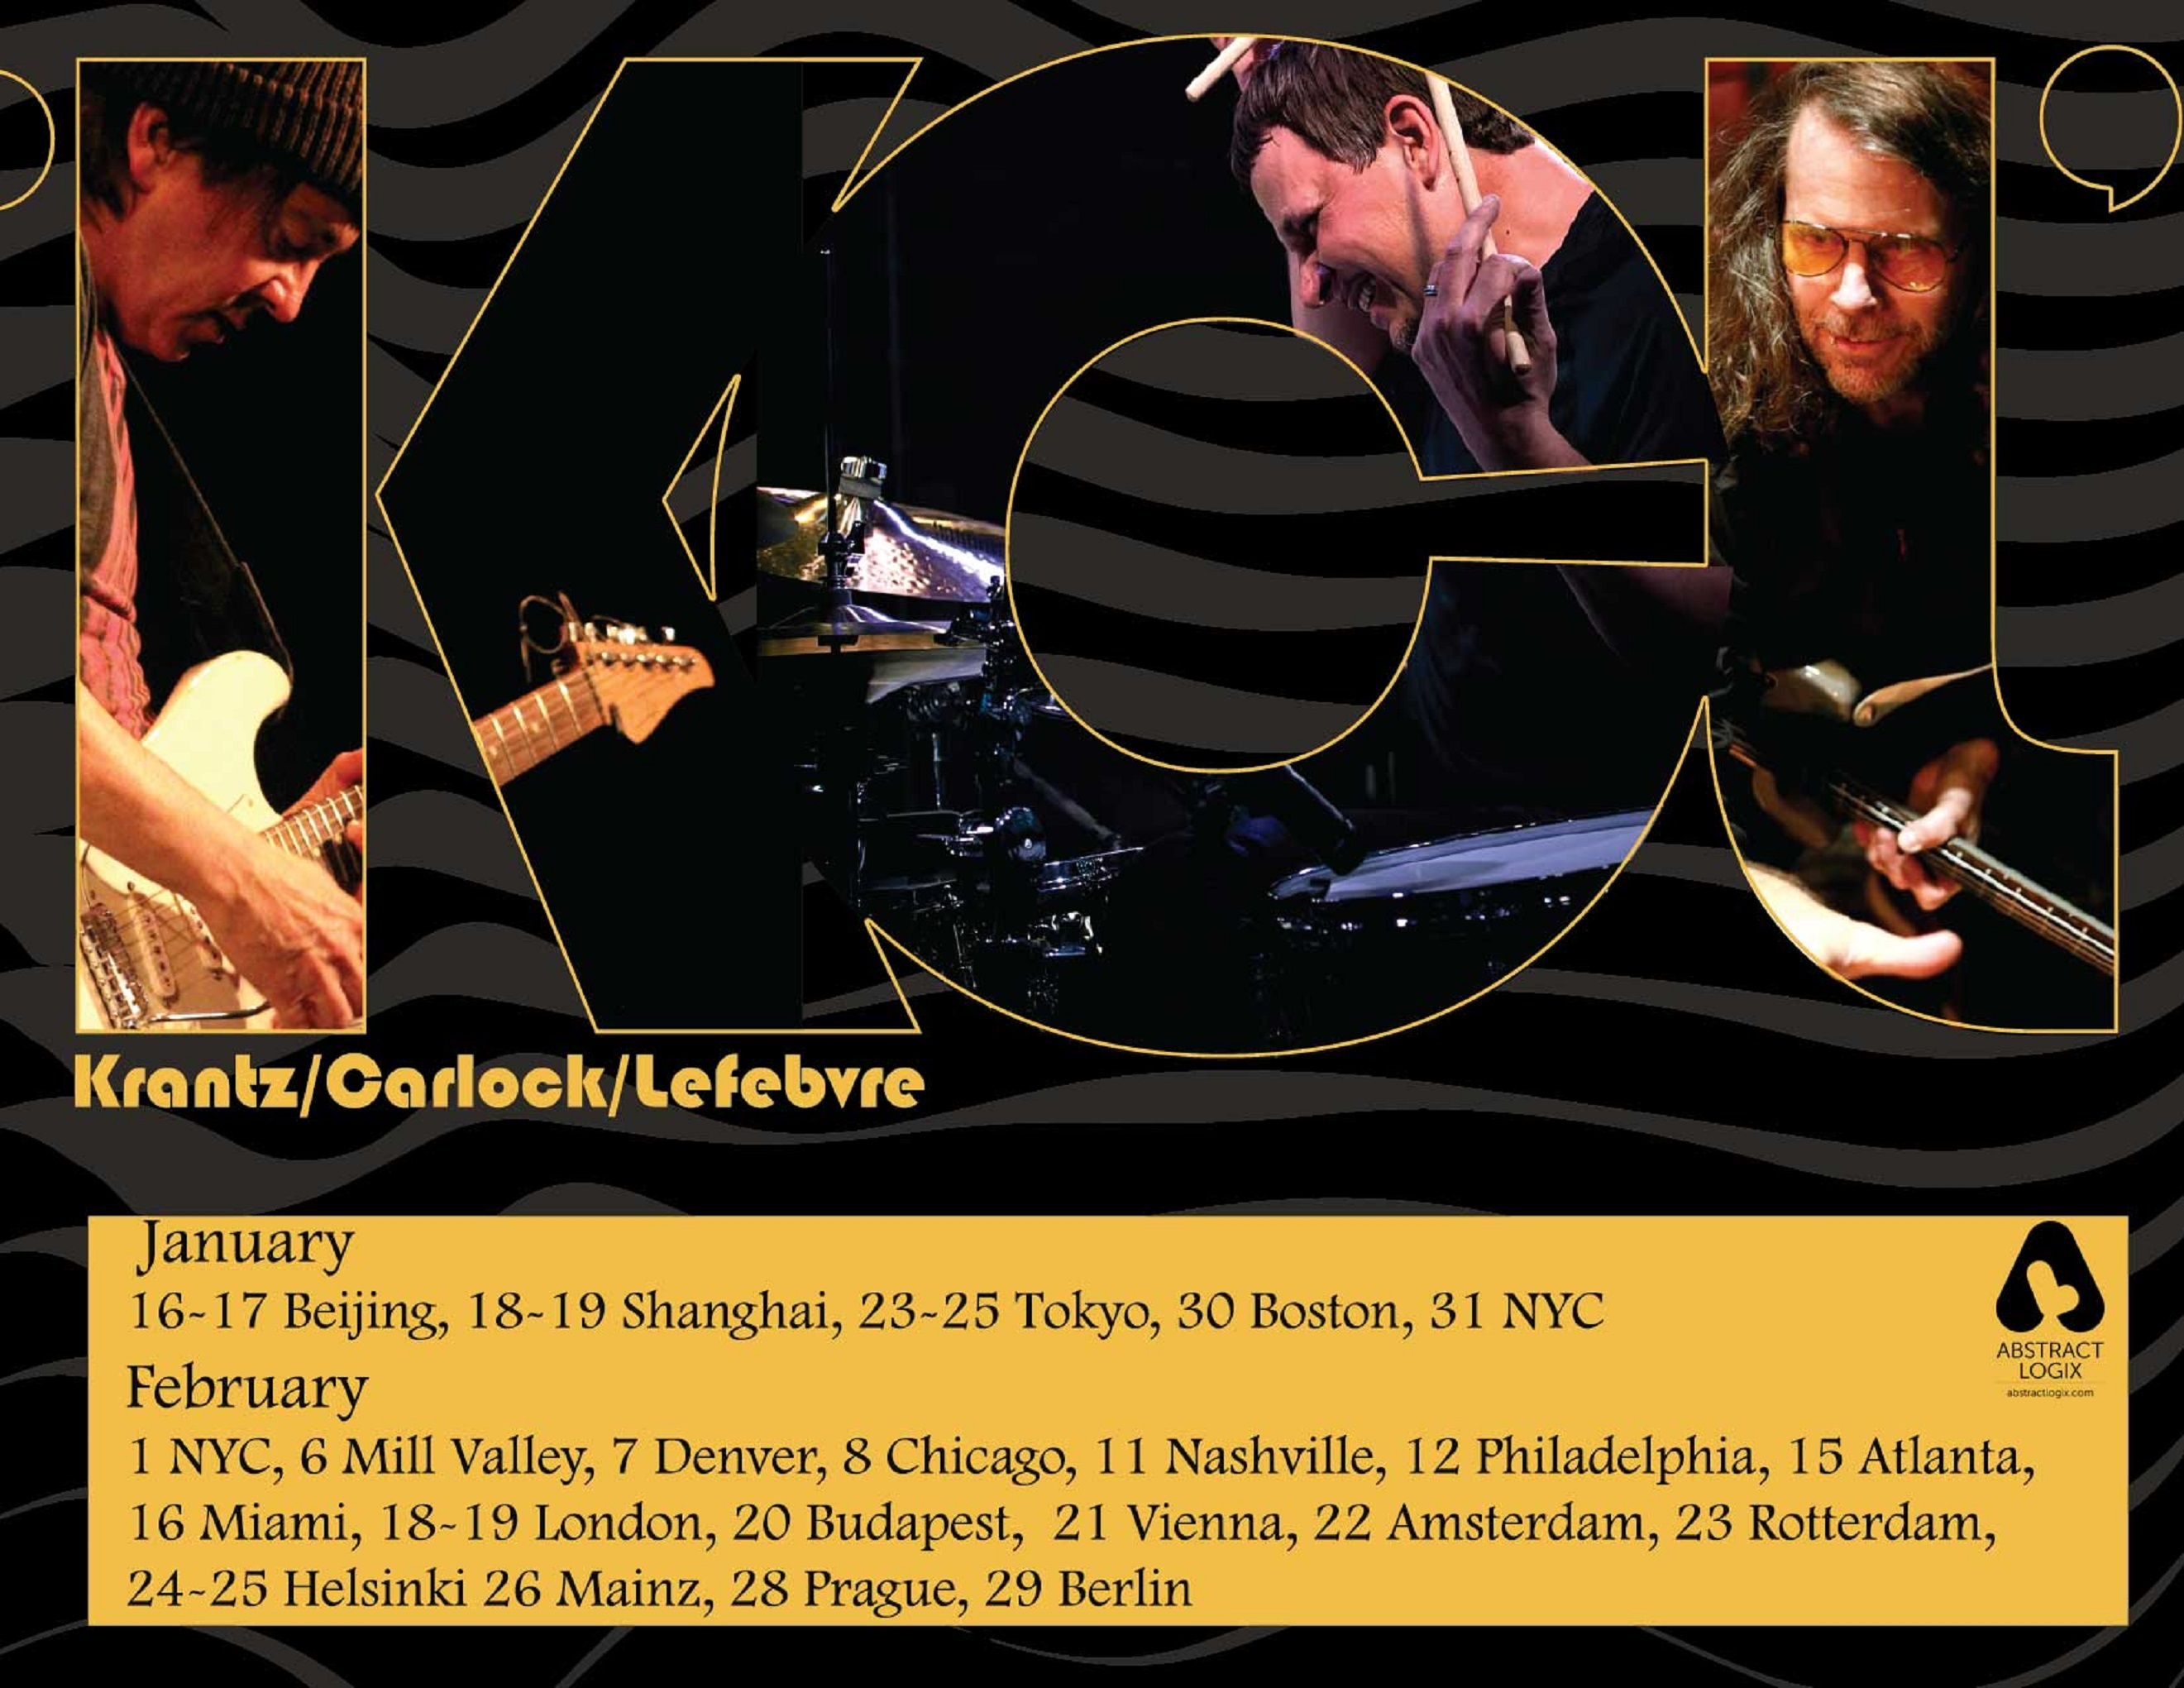 KCL ON TOUR ... featuring: Guitarist Wayne Krantz, Drummer Keith Carlock and Bassist Timothy Lefebvre